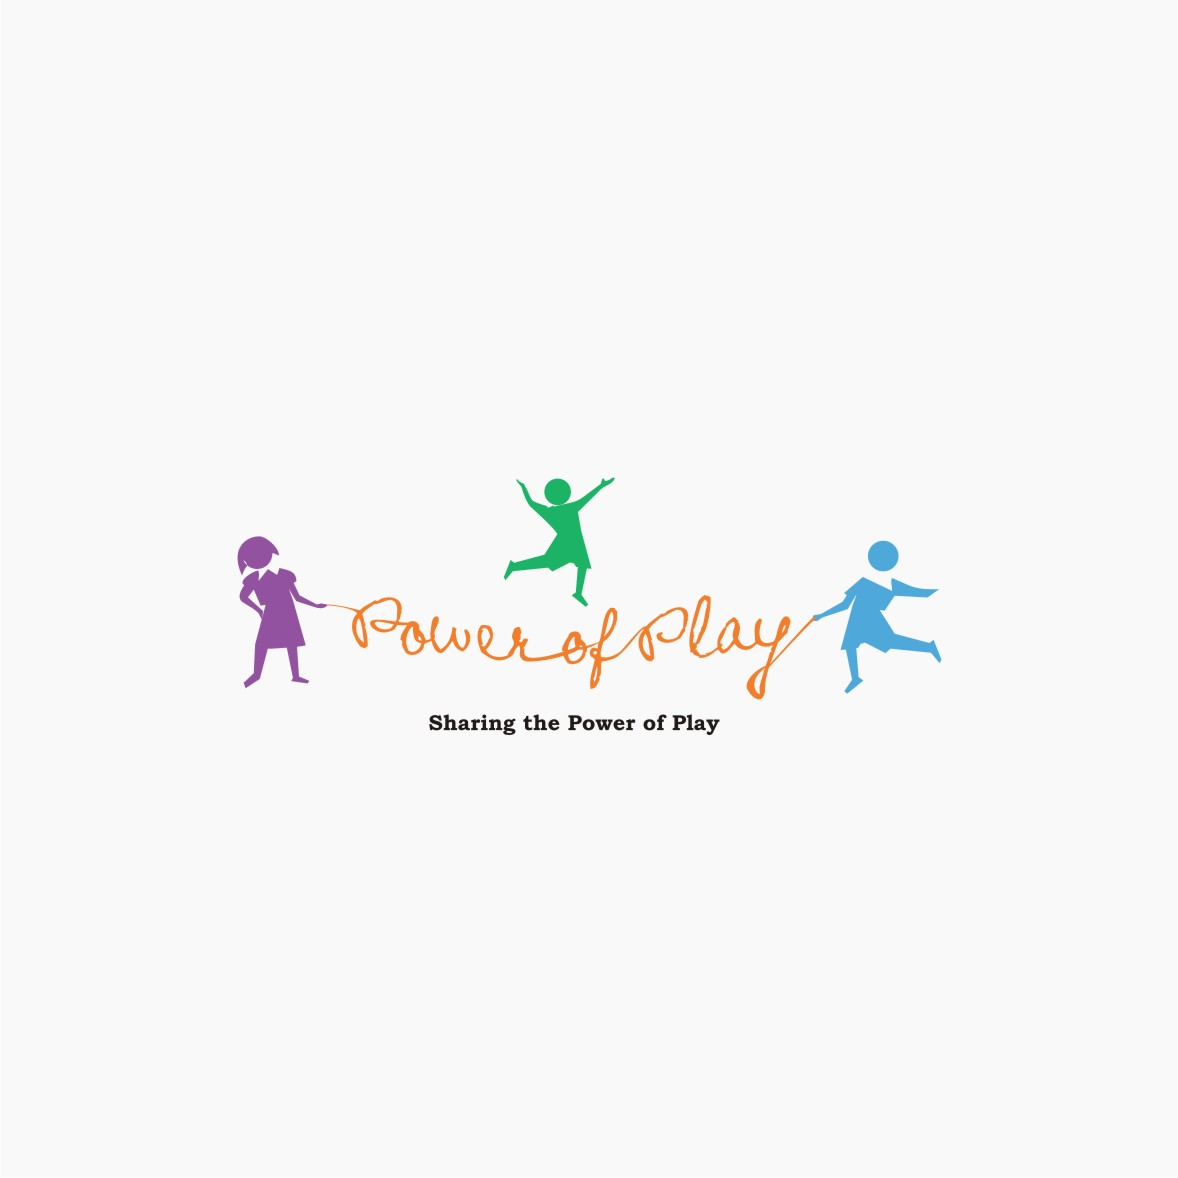 Logo Design by graphicleaf - Entry No. 64 in the Logo Design Contest Power Of Play Logo Design.